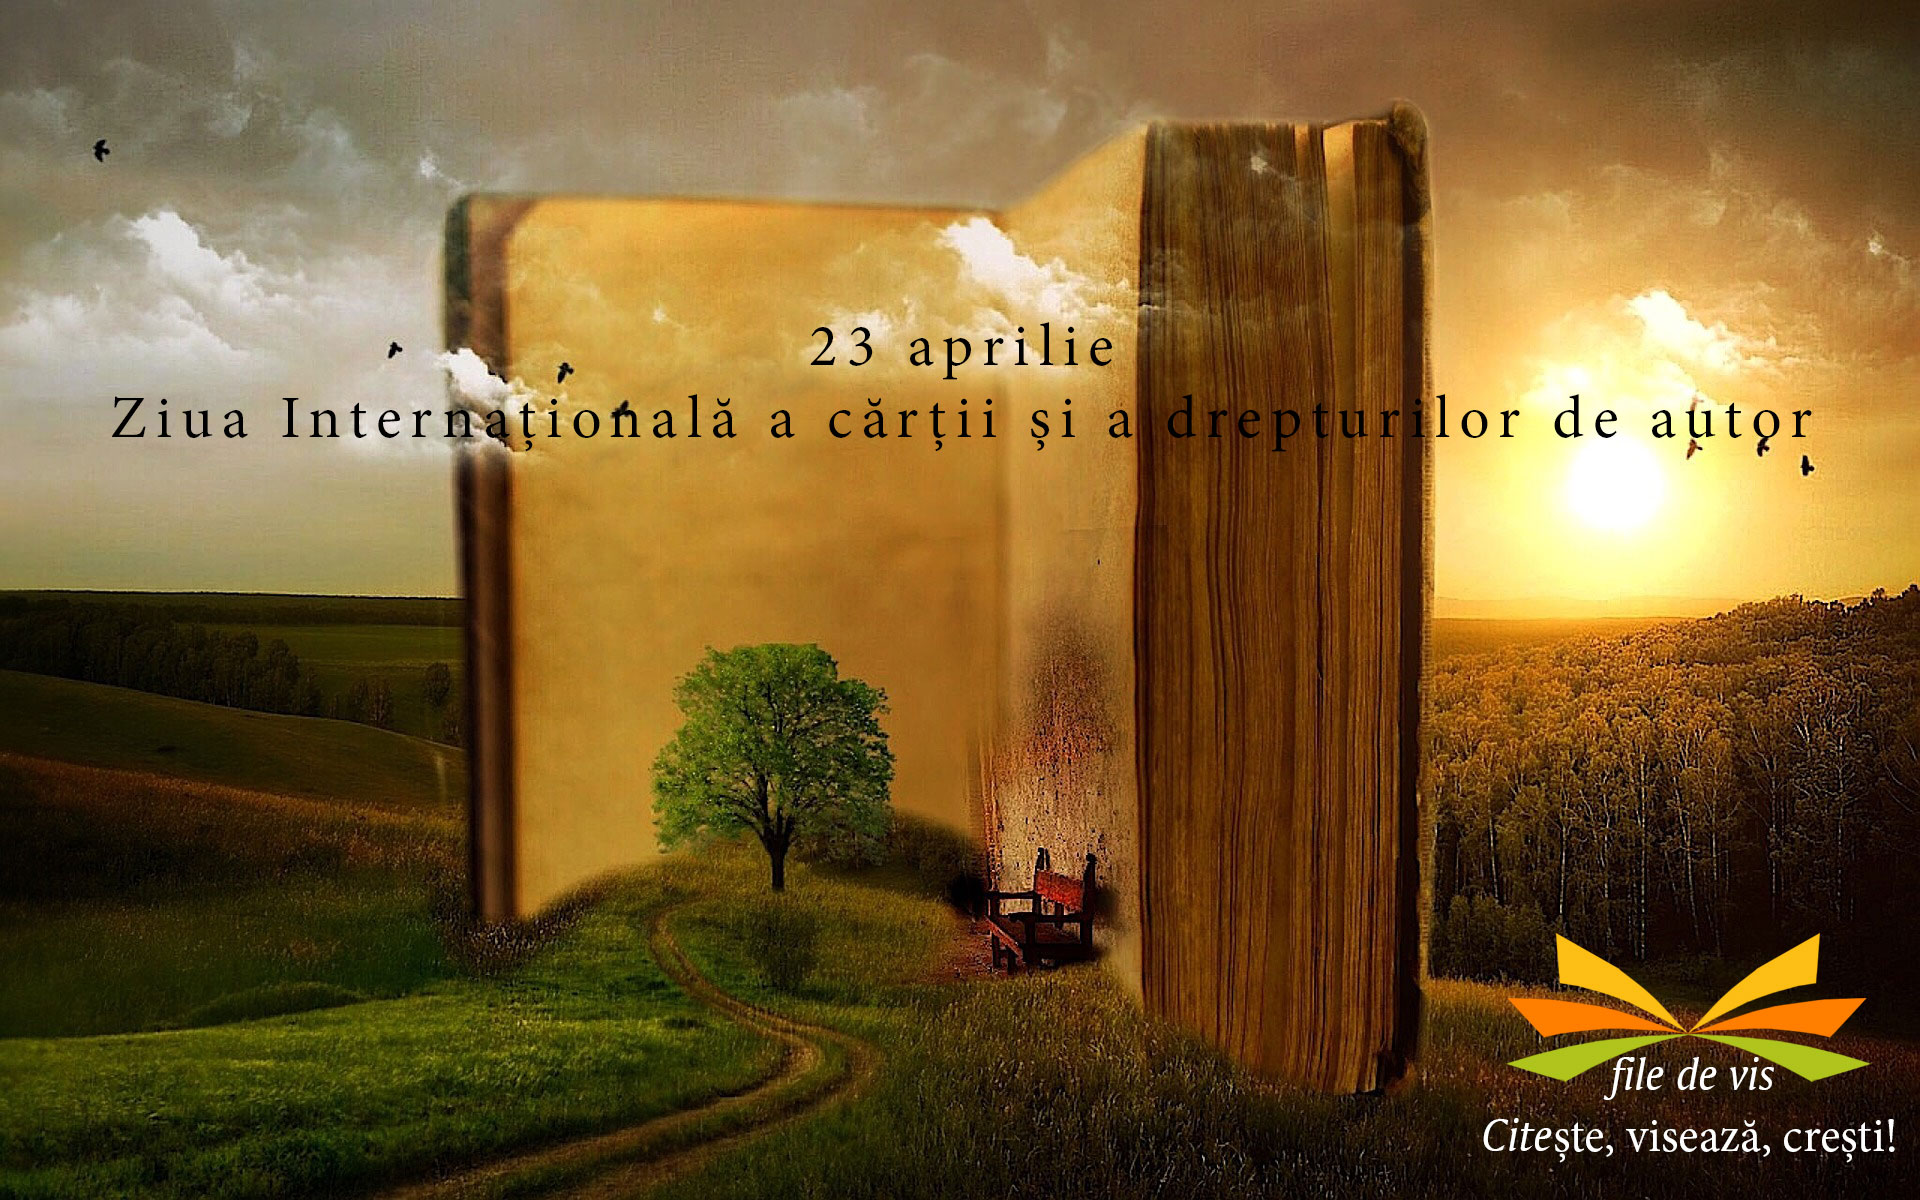 ziua internationala a cartii fb cover